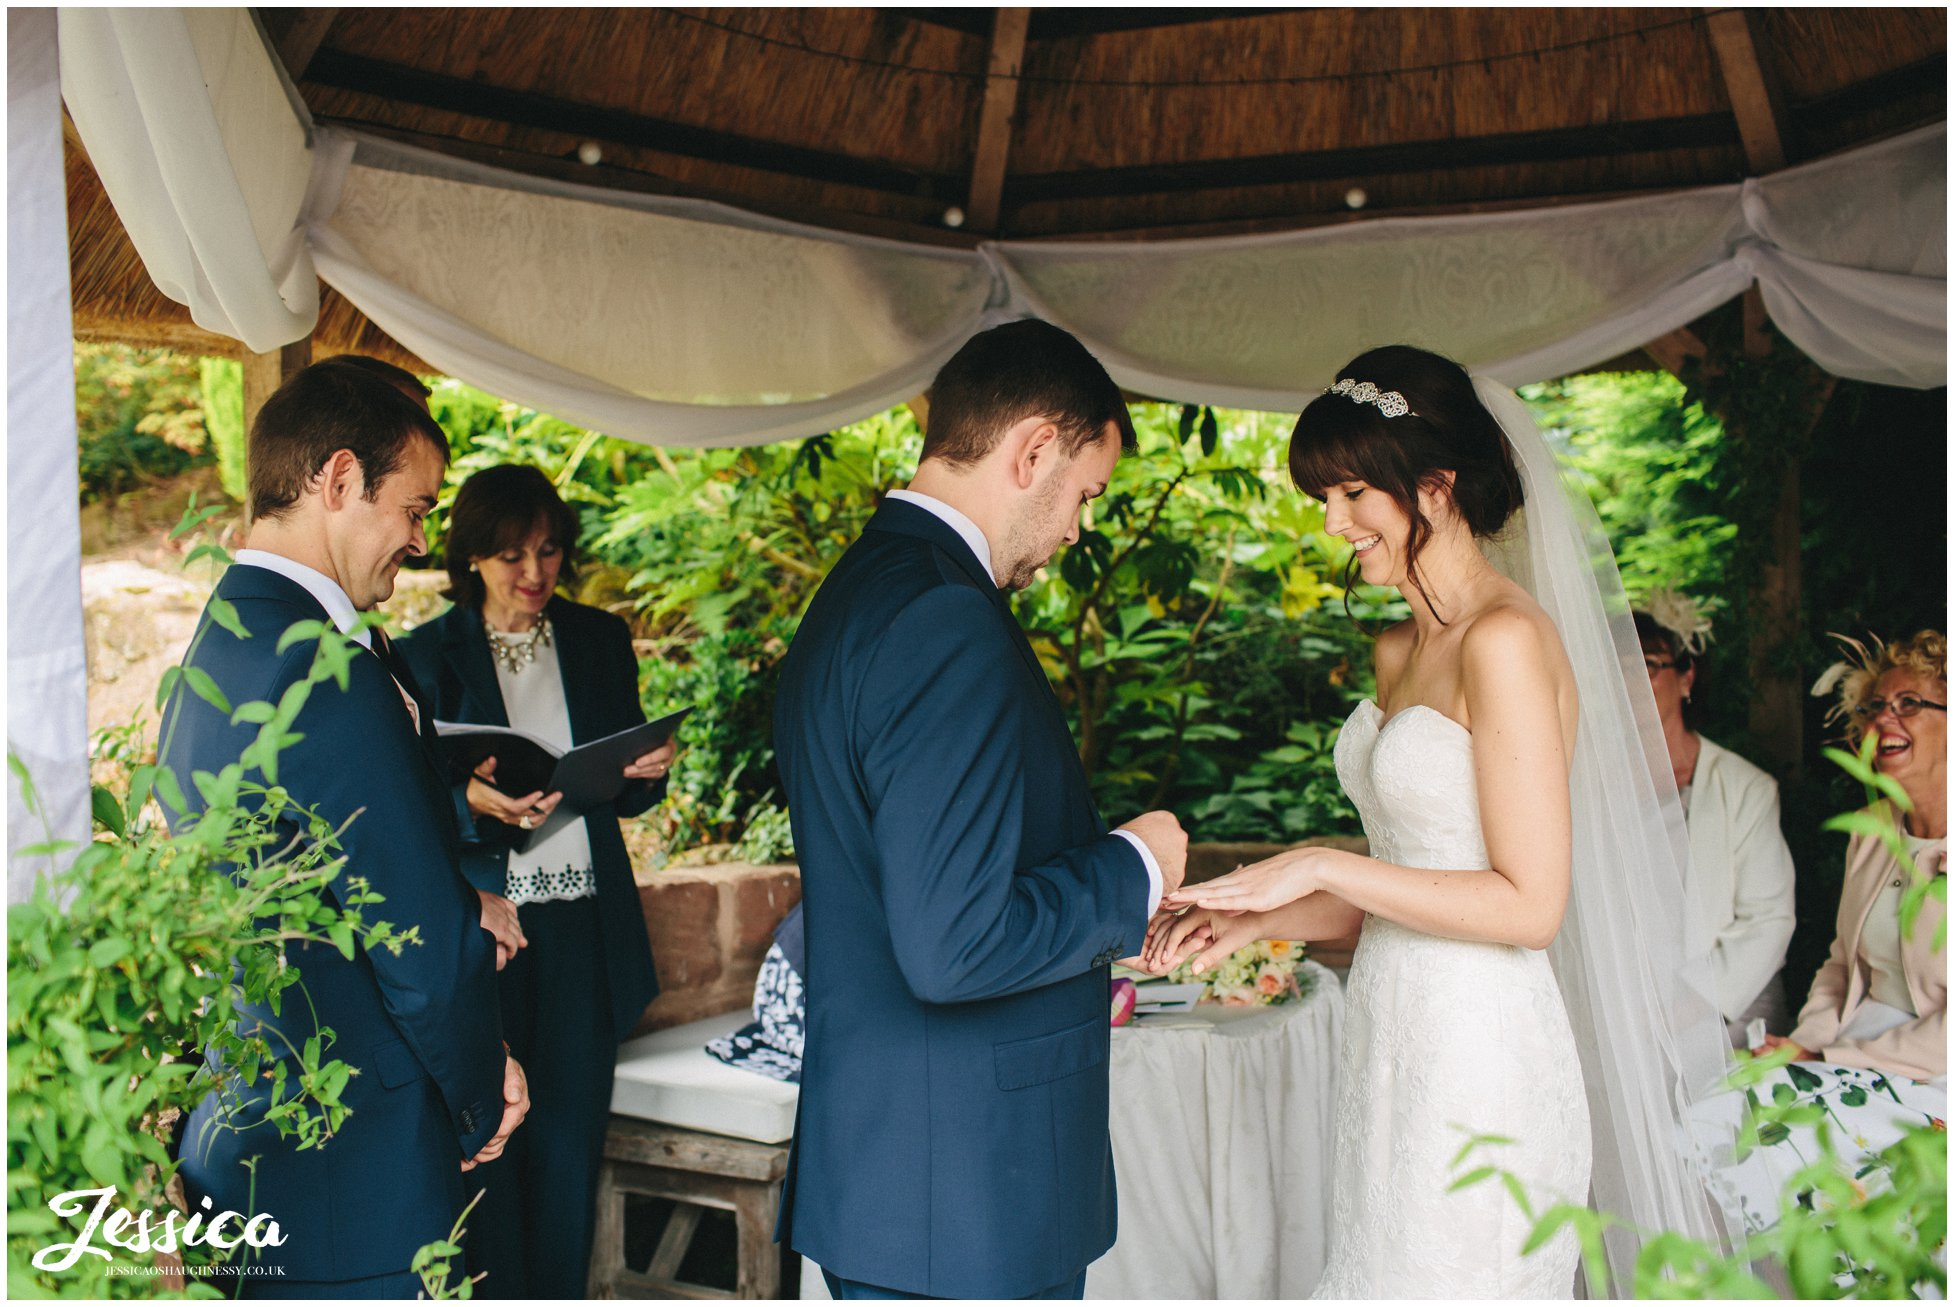 the bride & groom exchange rings at their ness gardens wedding on the wirral